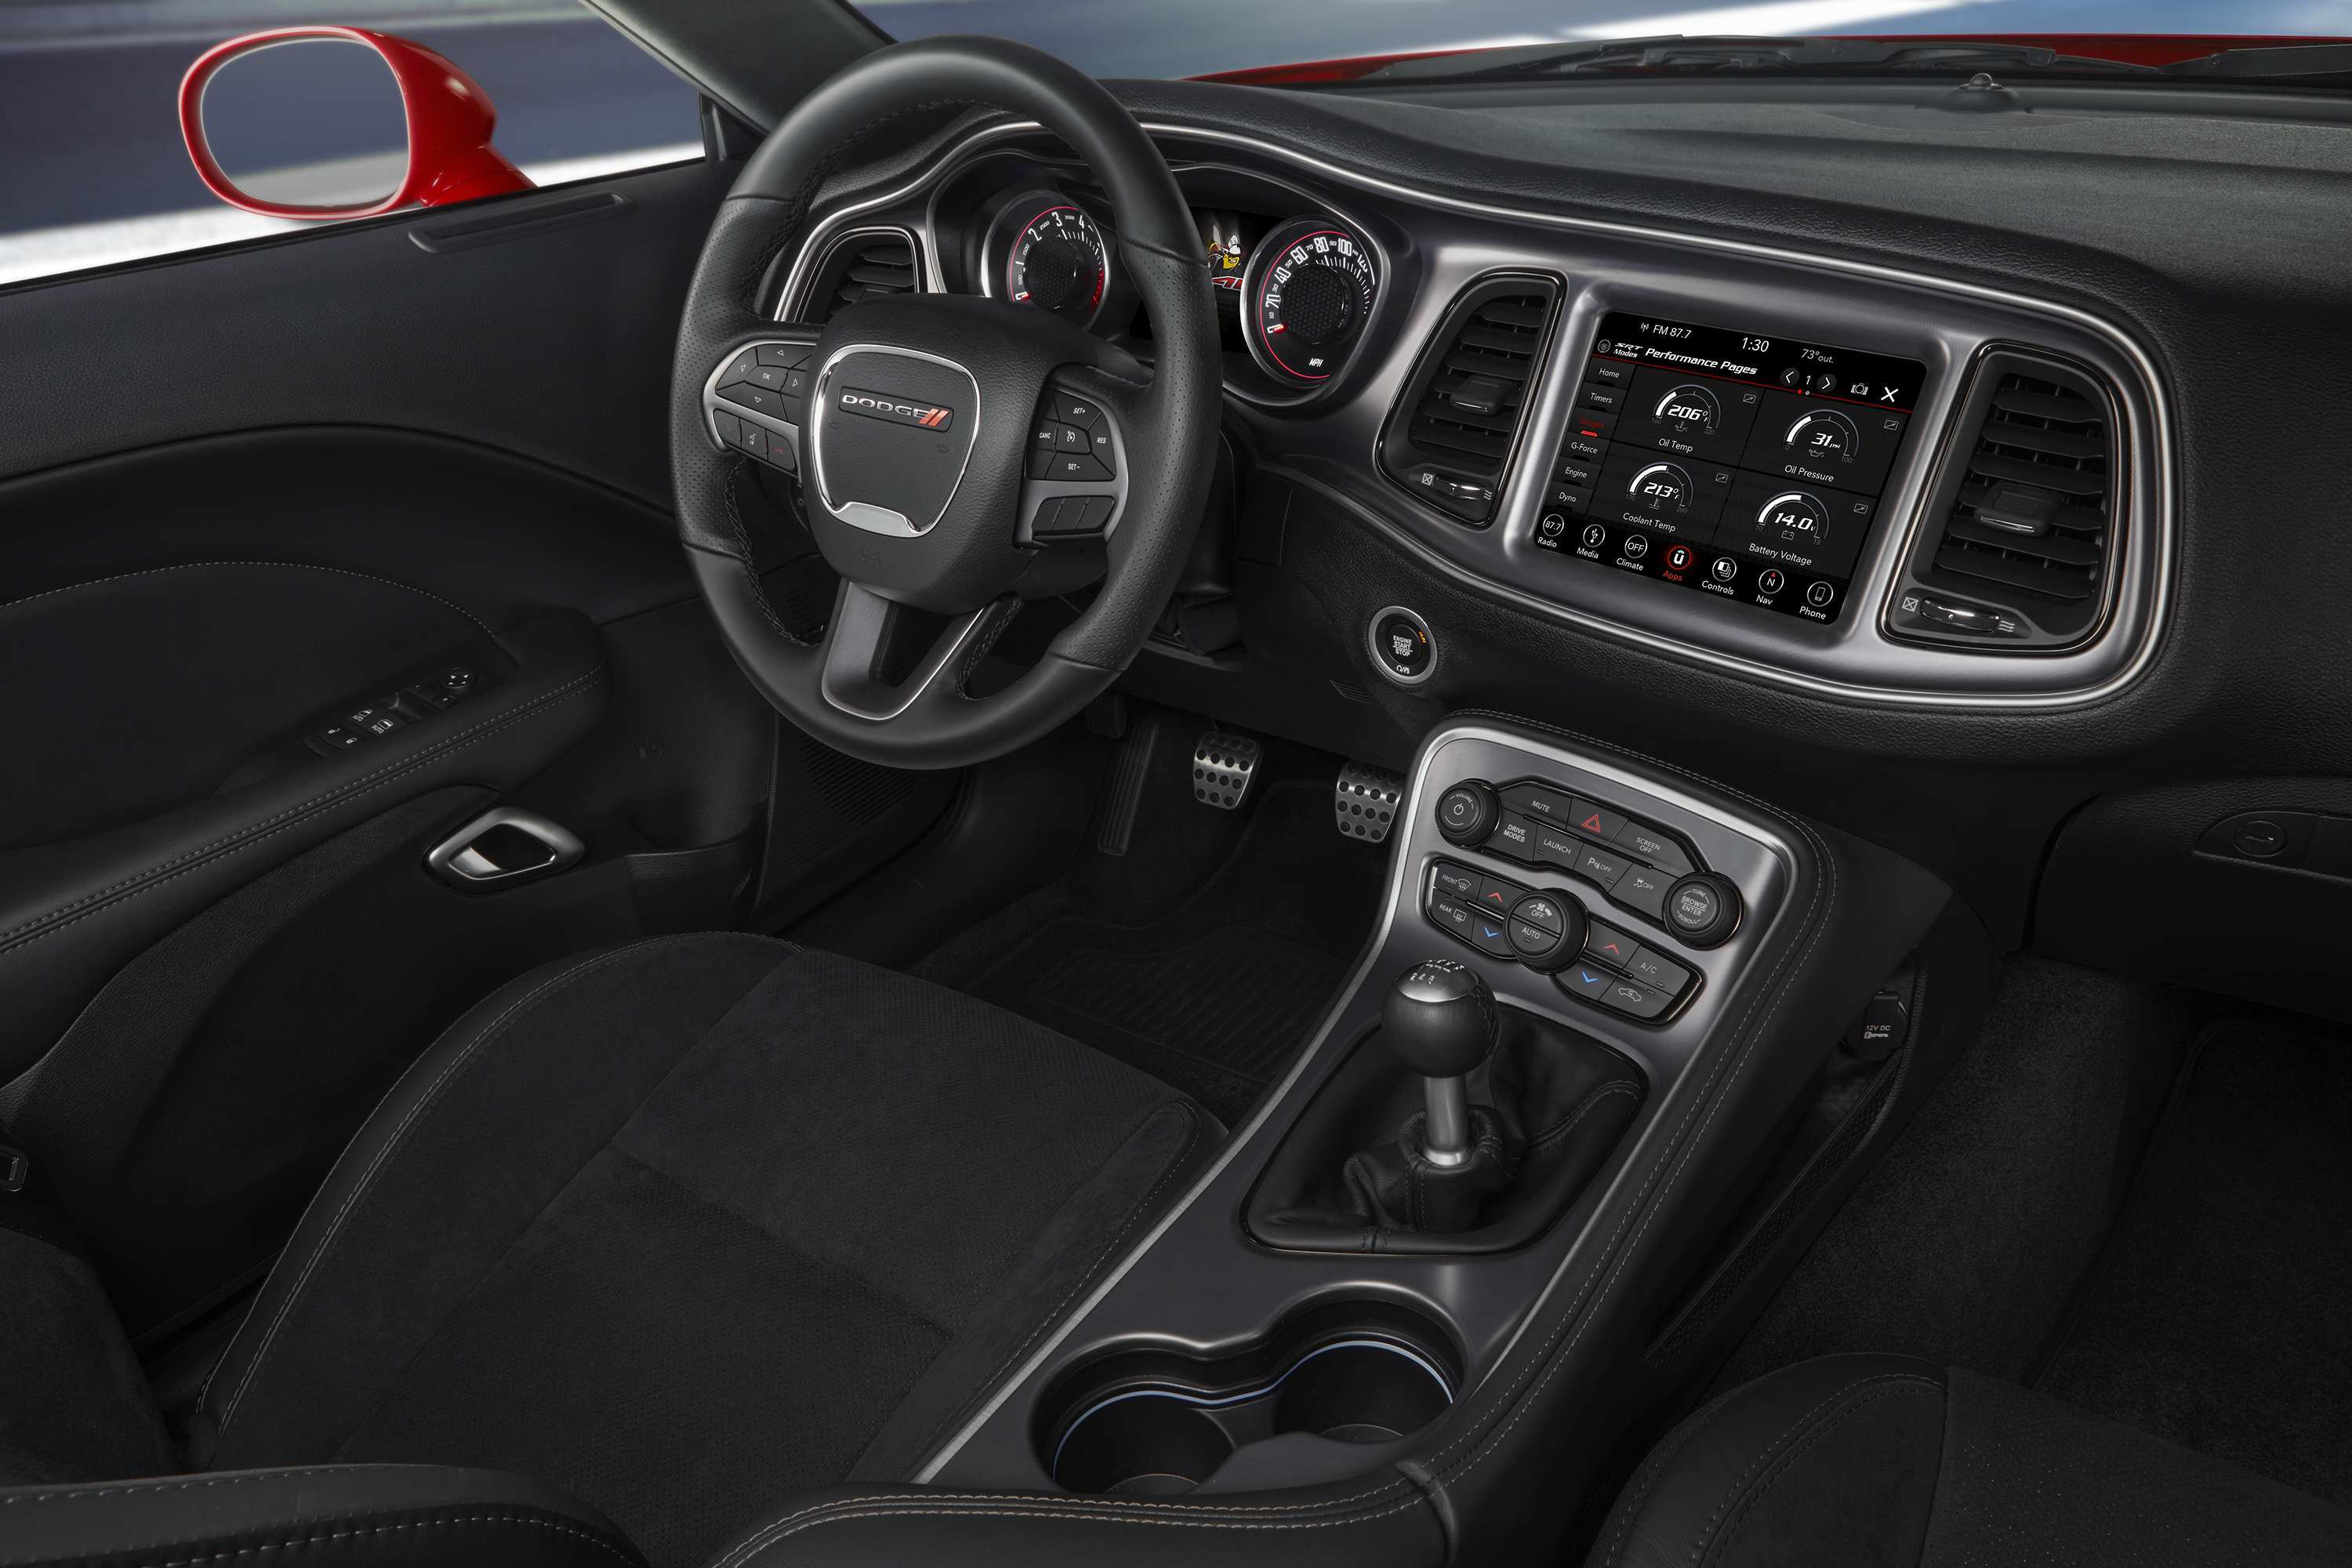 16 A 2019 Dodge Interior Exterior And Interior